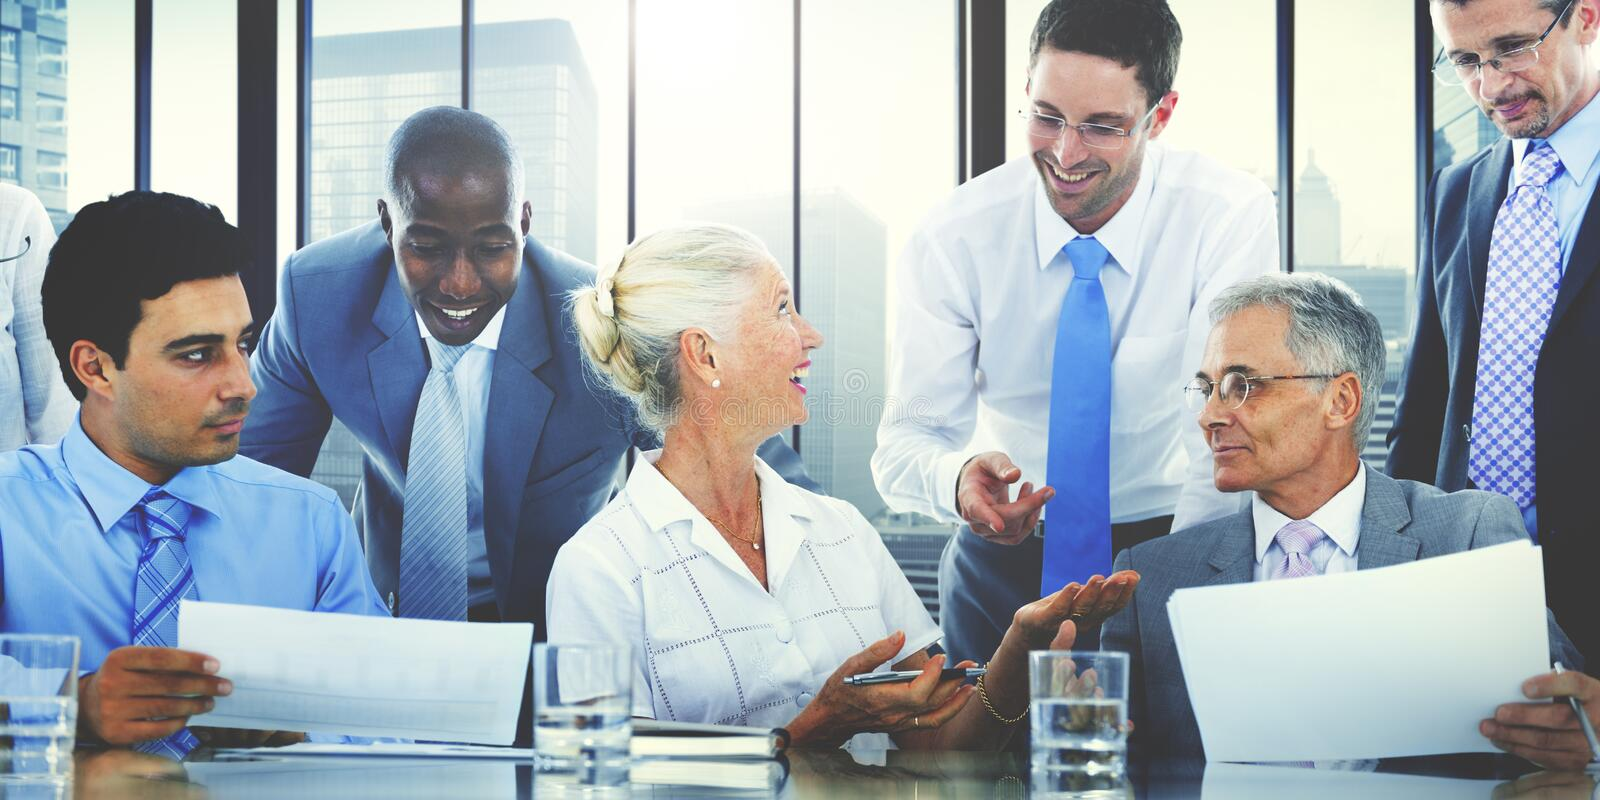 Business People Meeting Cooperation Team Concept.  royalty free stock photos